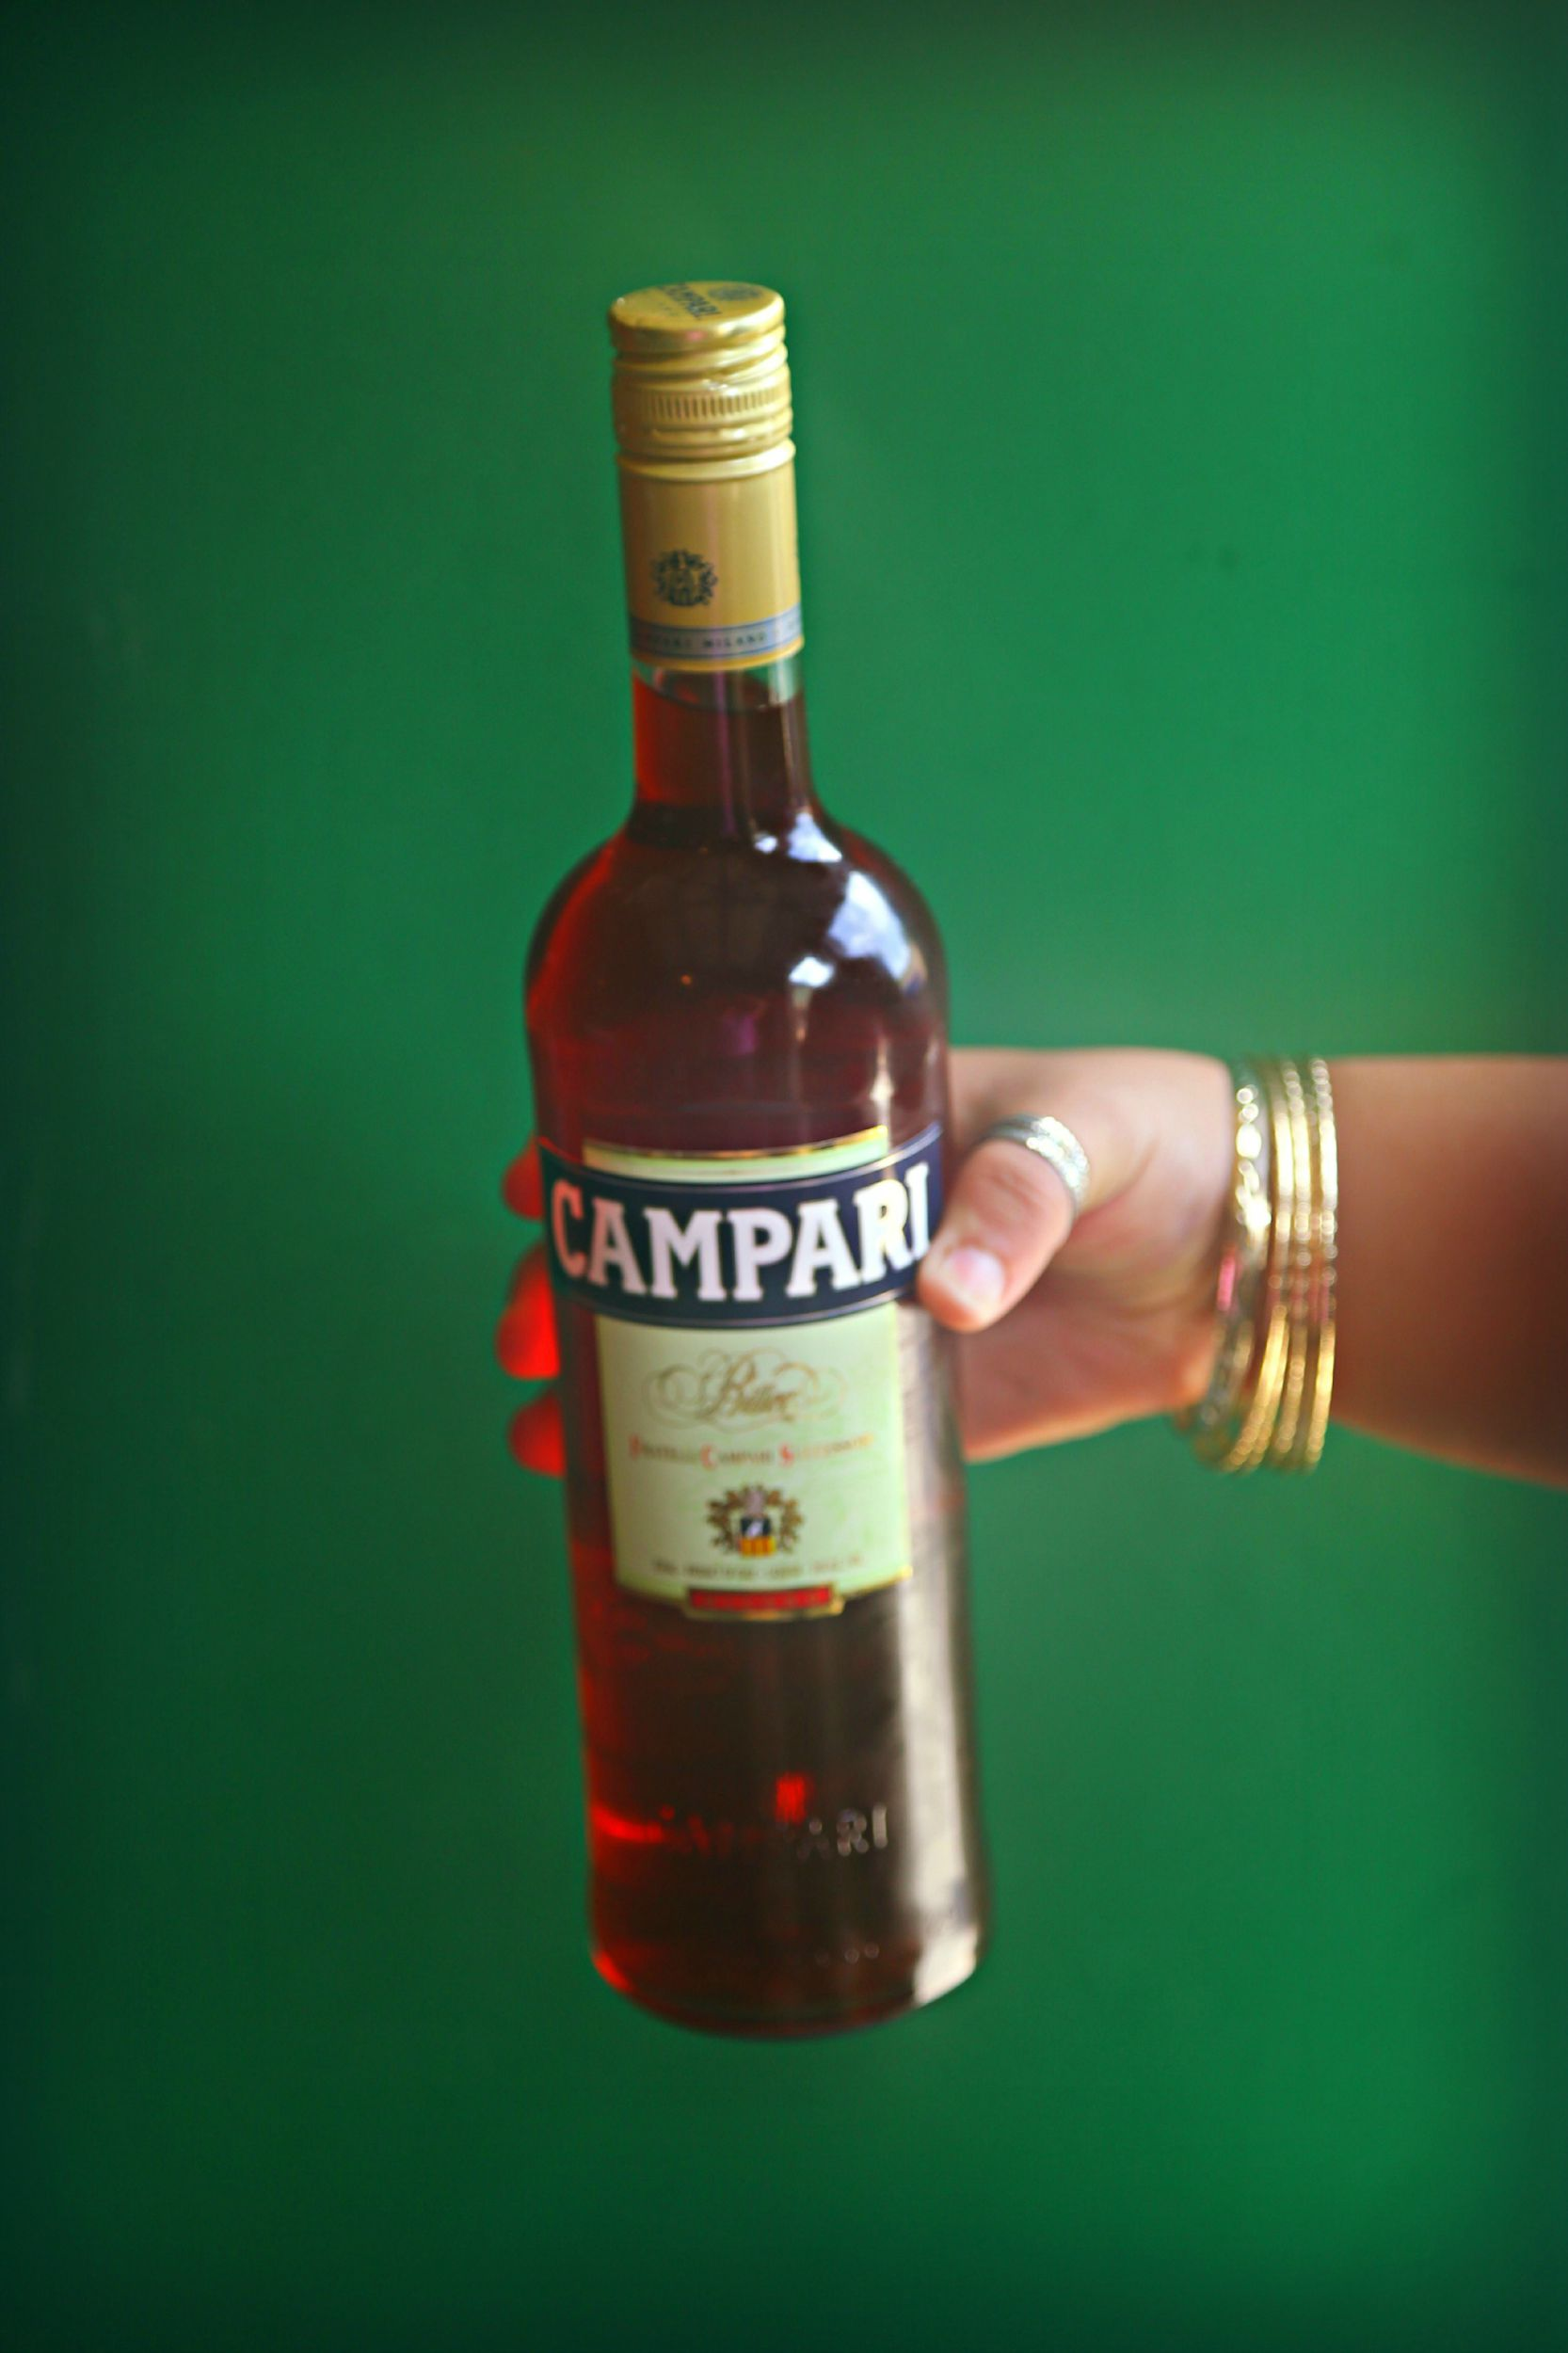 campari-cocktail-sweetlifebake-vianneyrodriguez